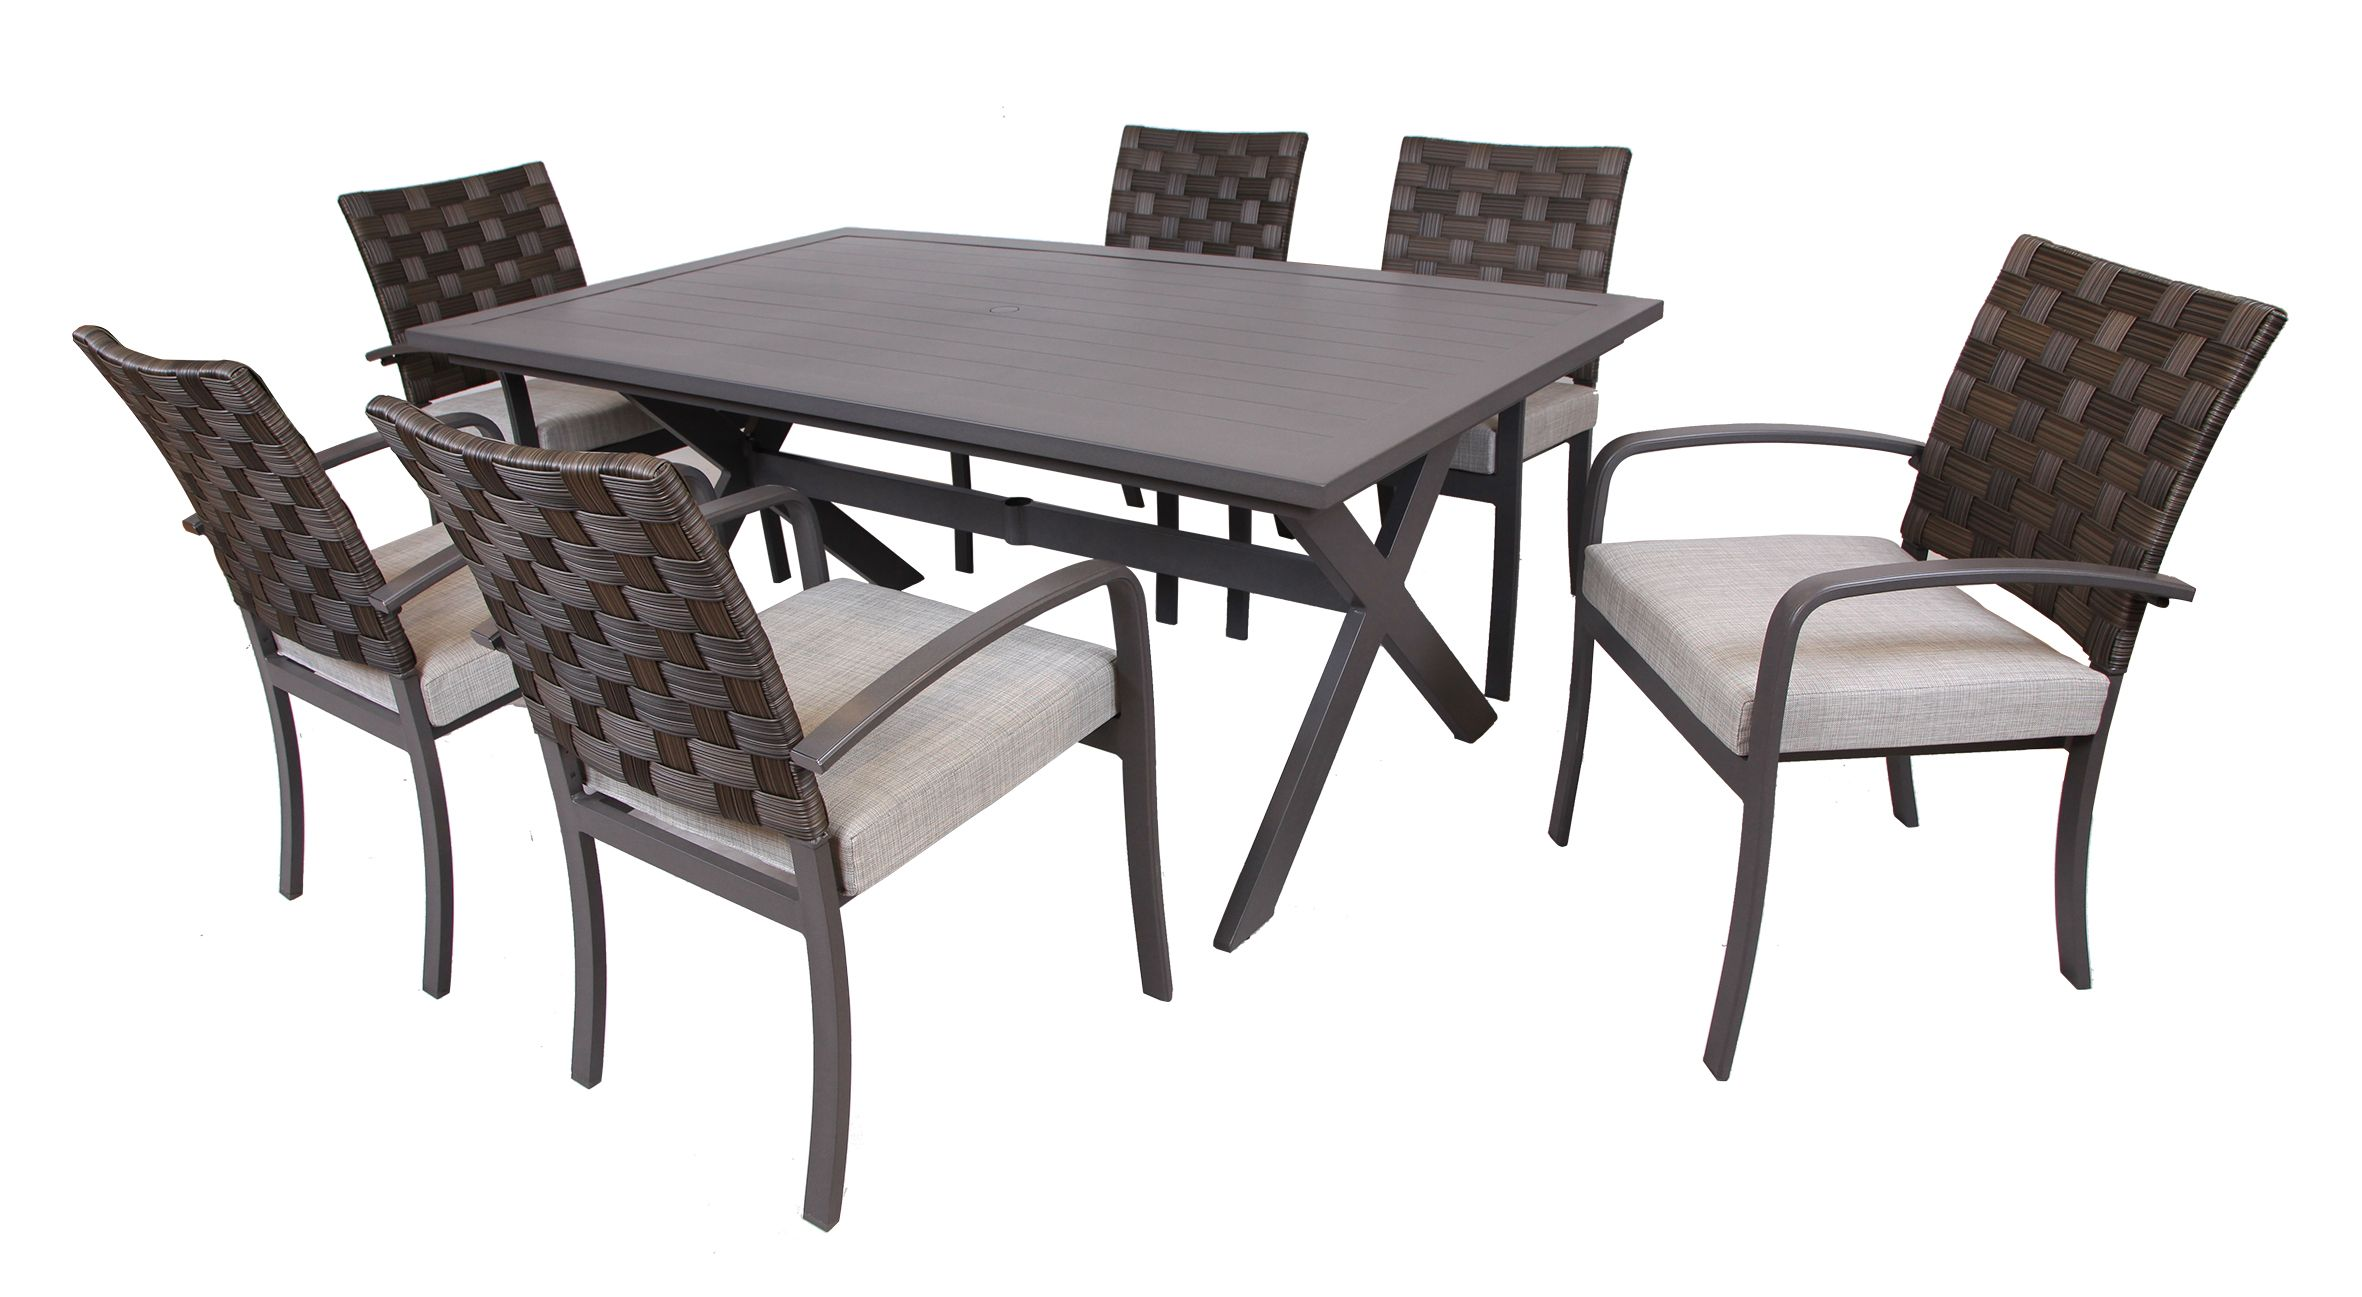 7 pc dining set 3i Northtown 7 Pc. Dining Set   BJ's Wholesale Club | Outdoor  7 pc dining set